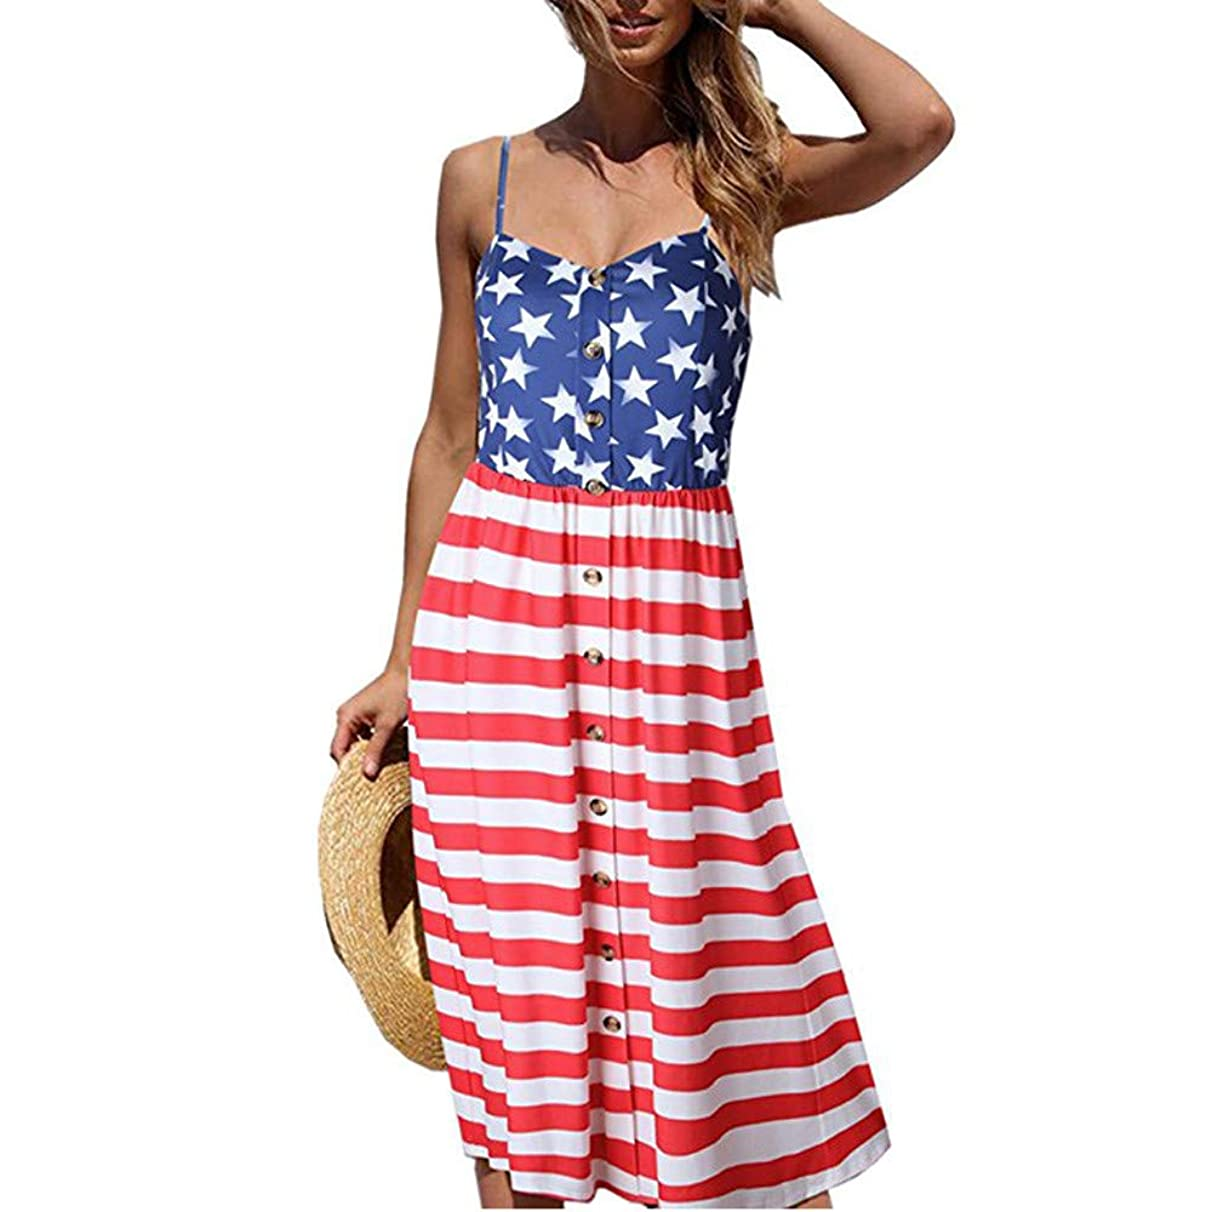 GJK-SION Women's Clothes 4th of July Patriotic American Flag Print Fashion Ladies Camisole Beach Party Long Dresses